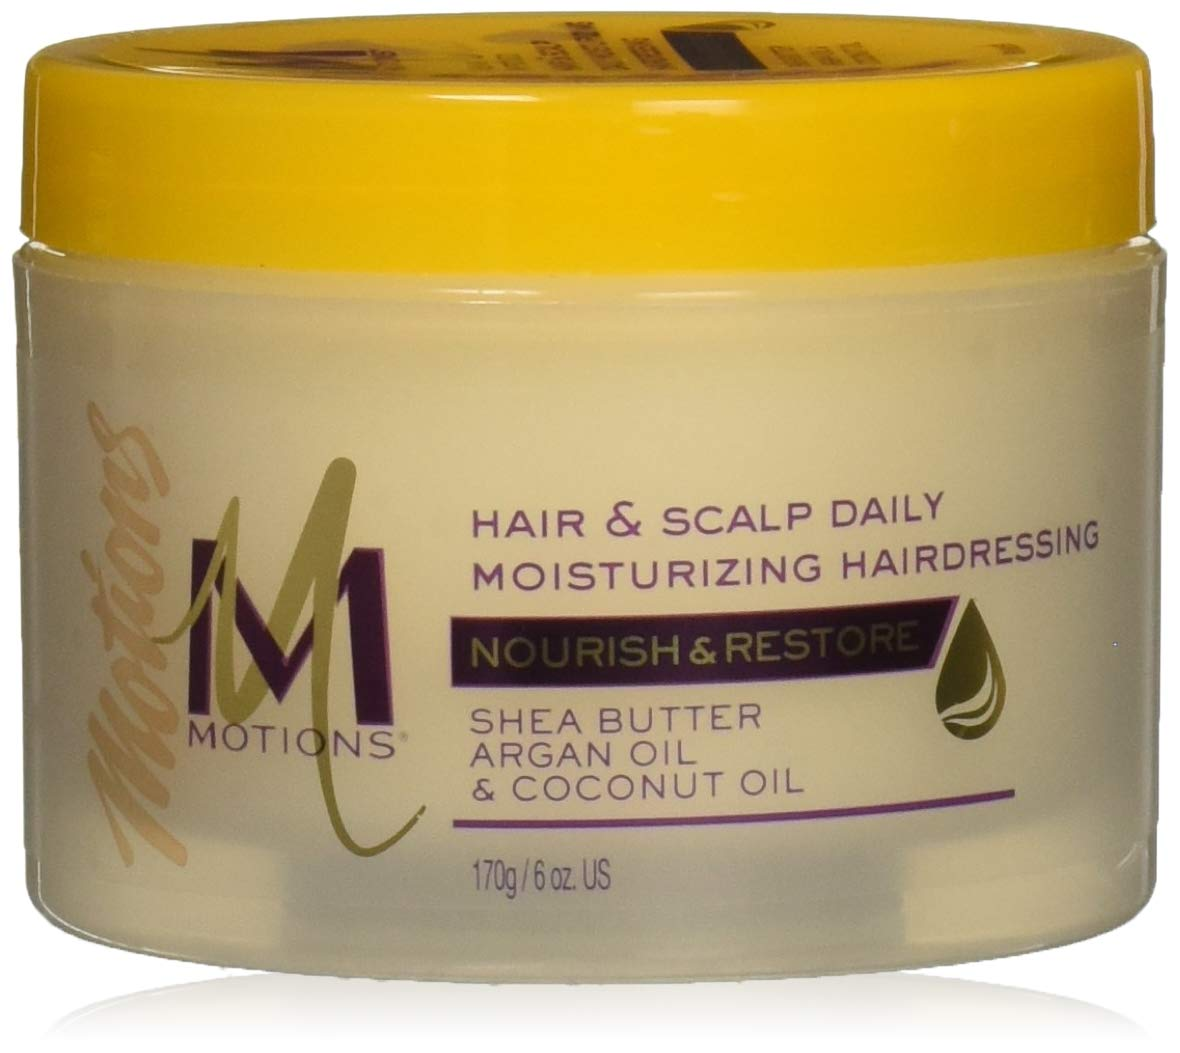 Motions Nourish & Care, Hair & Scalp Daily Moisturizing Hairdressing 6 oz (6 pack)